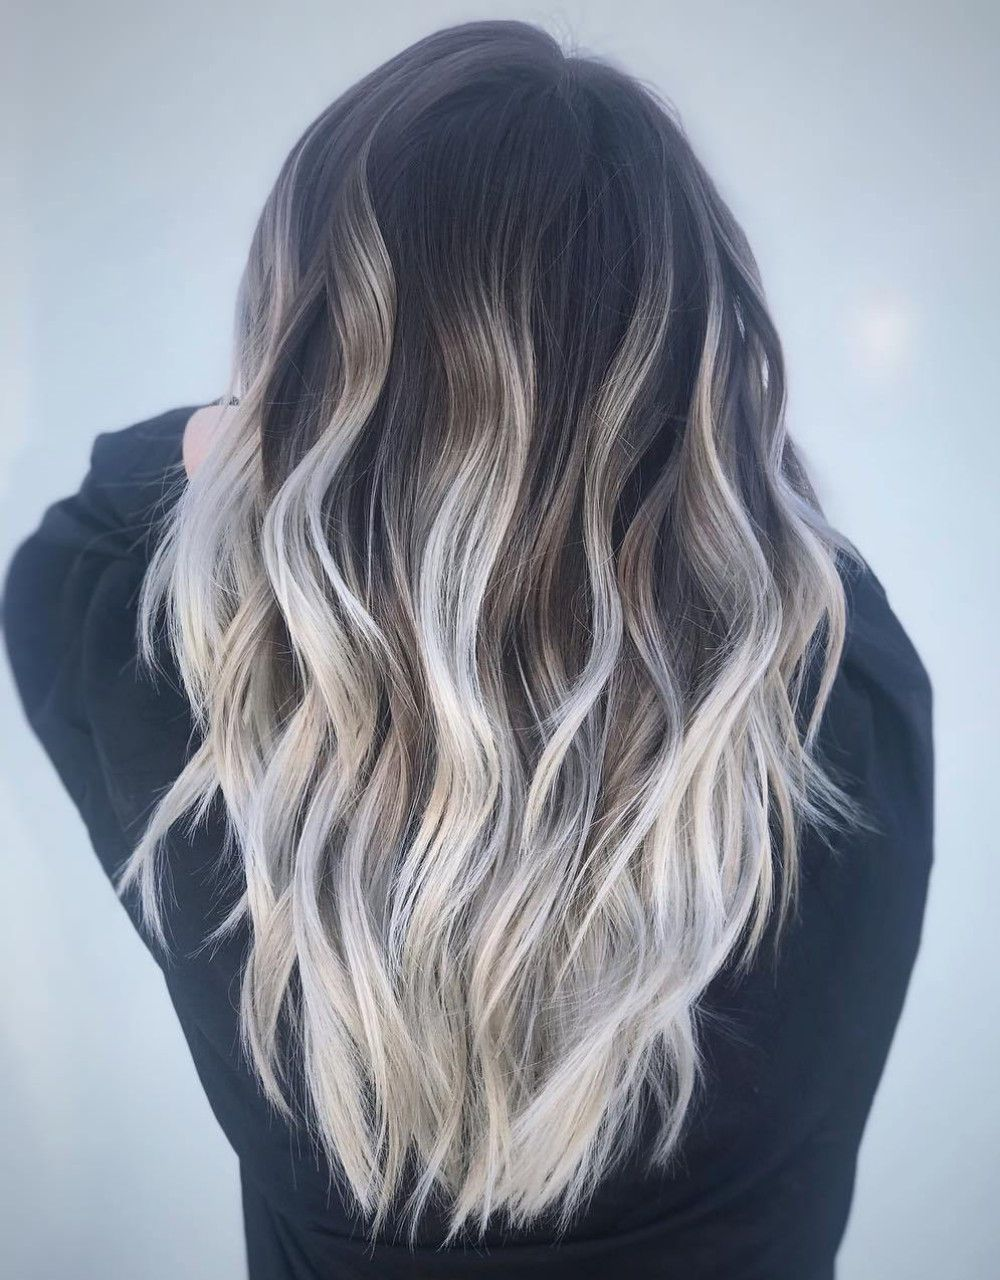 50 Pretty Ideas of Silver Highlights to Try ASAP - Hair Adviser